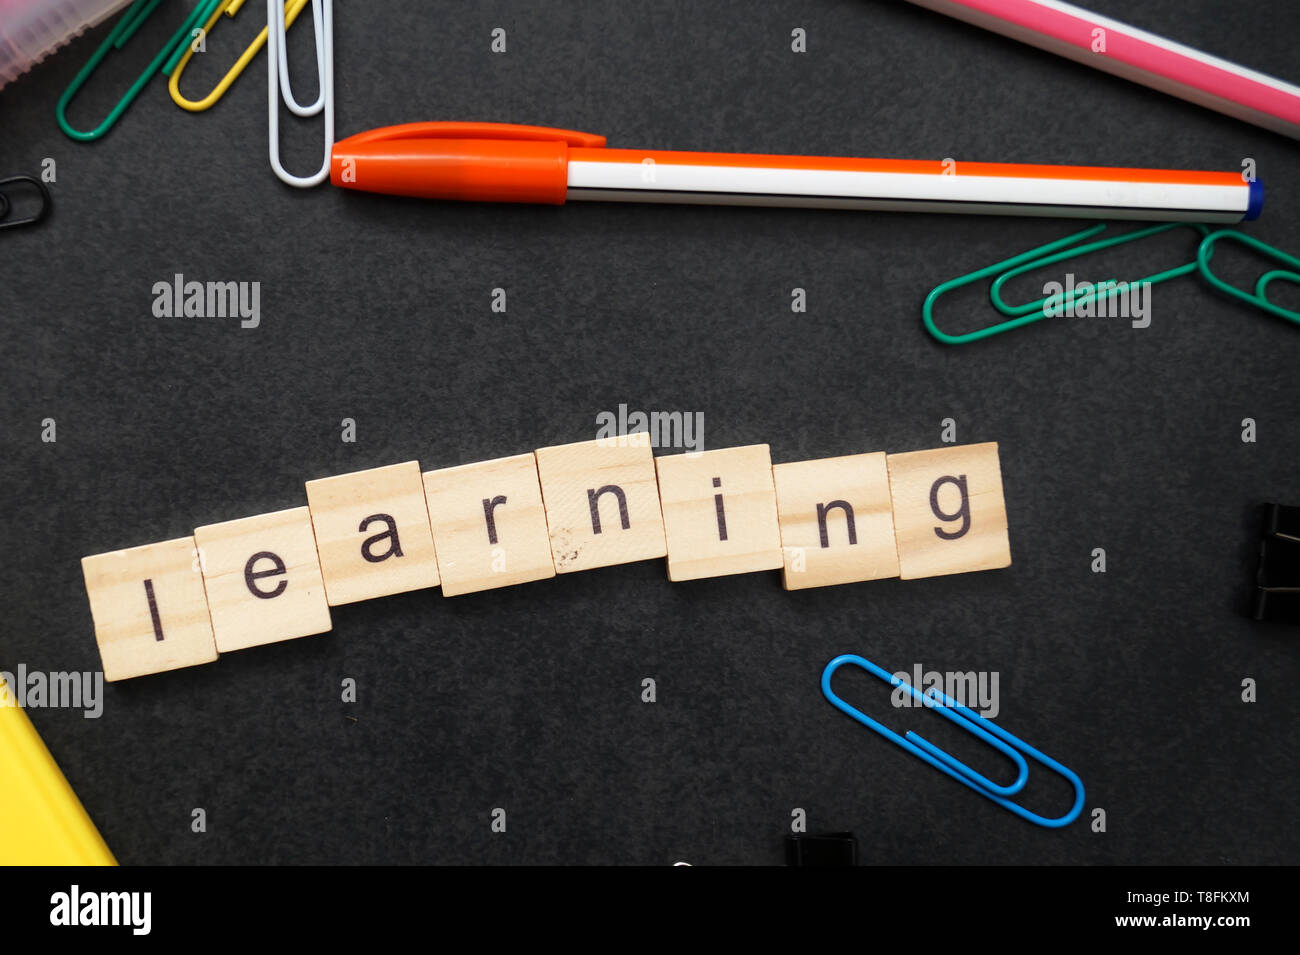 LEARNING word written on wood block, from above - Stock Image